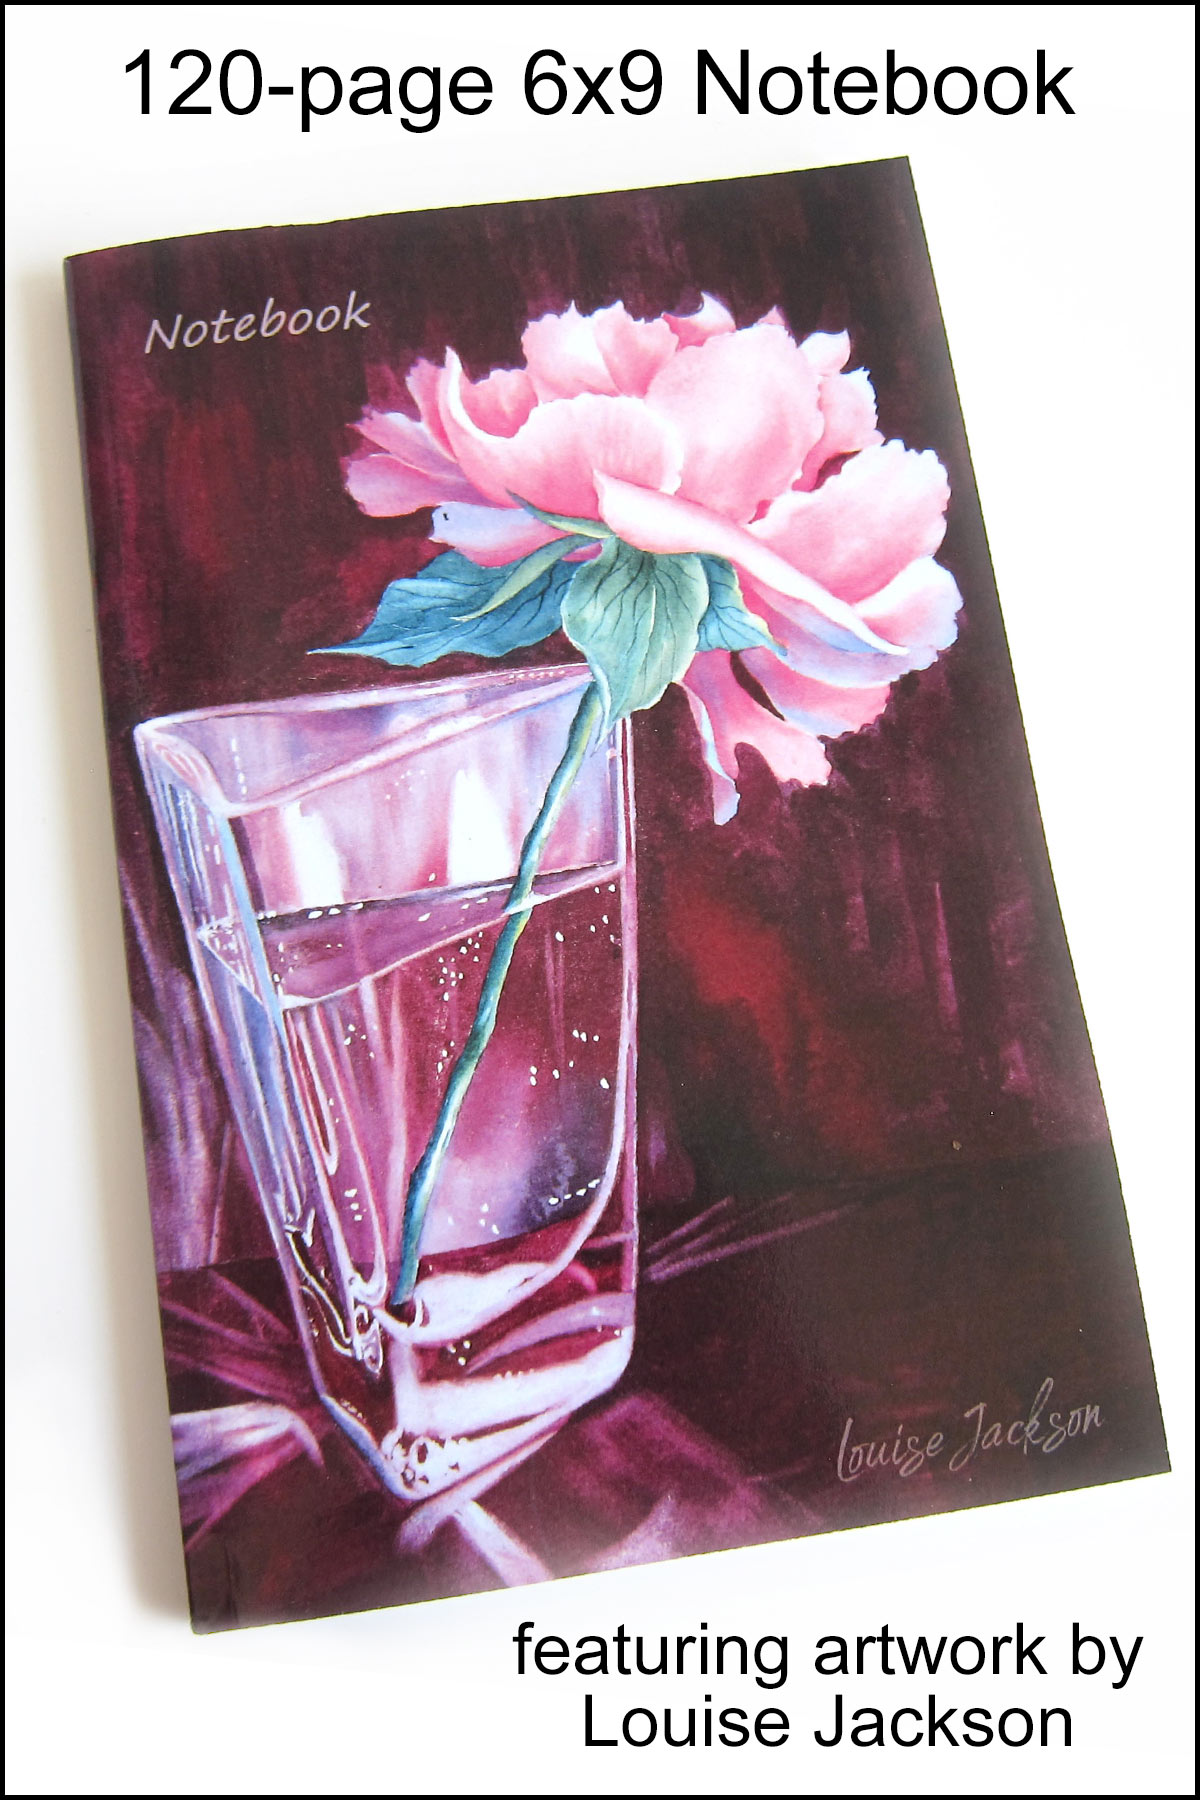 120-page 6x9 notebook with a pink peony watercolor painting on the cover.